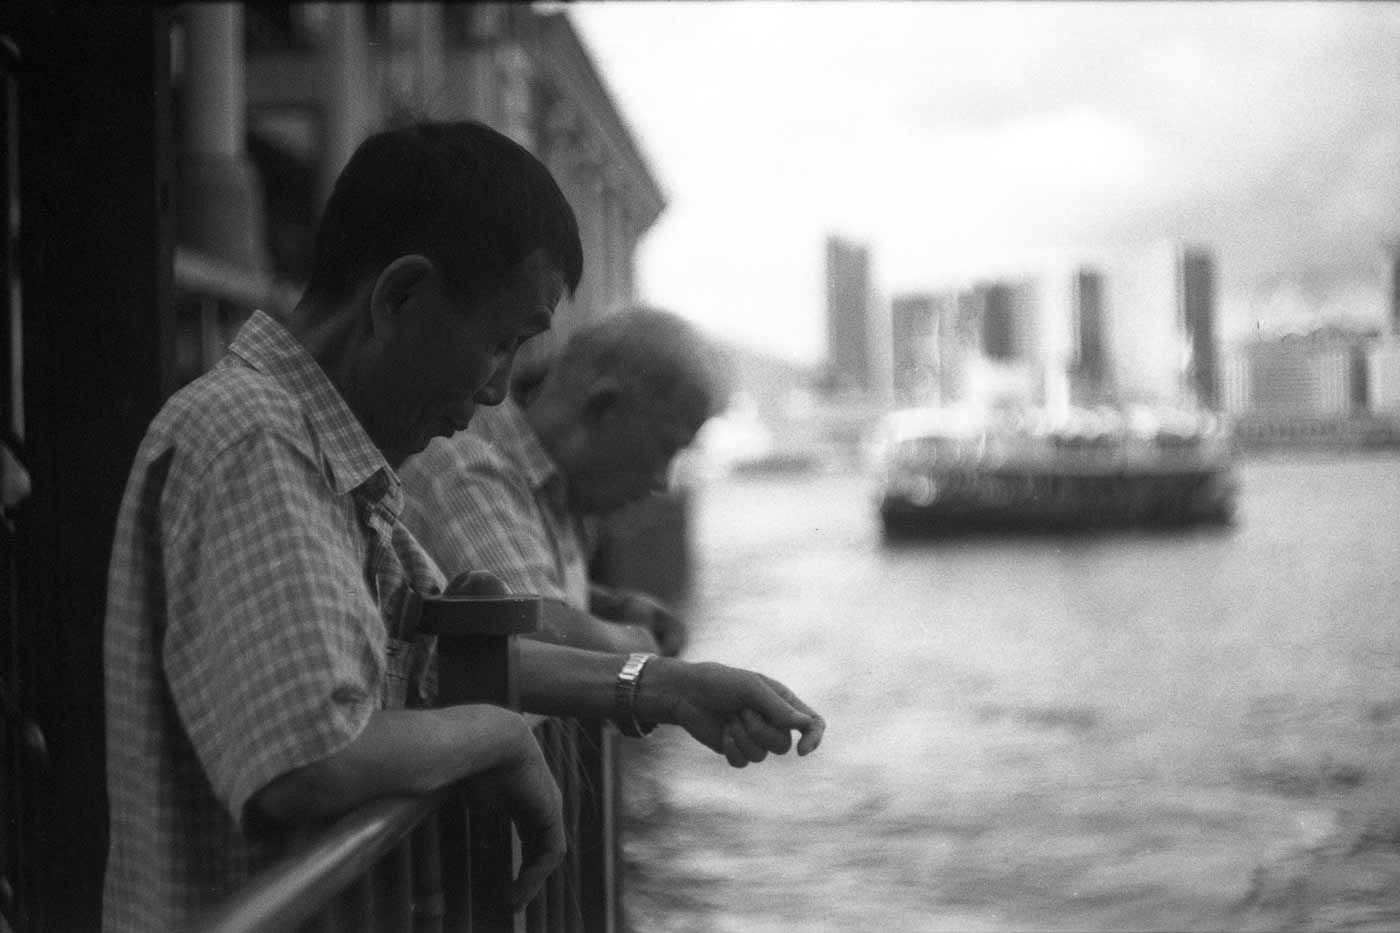 Leica-summicron-50mm-f2-50-f2.0-collapsible-v1-cron-lens-review-men-fishing-victoria-harbour-hk-hong-kong-efke-100